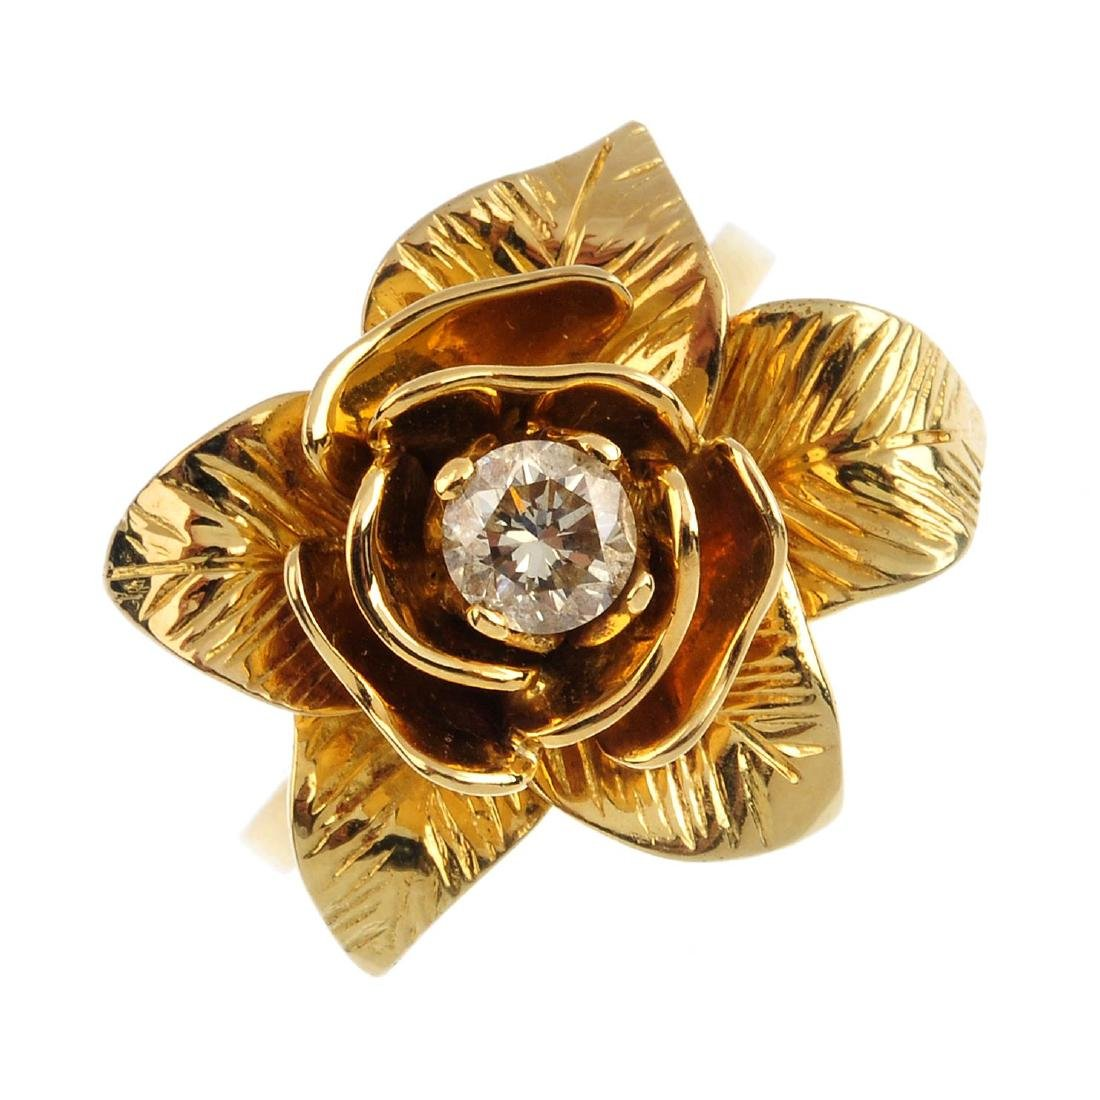 A diamond floral ring. Designed as a rose, the